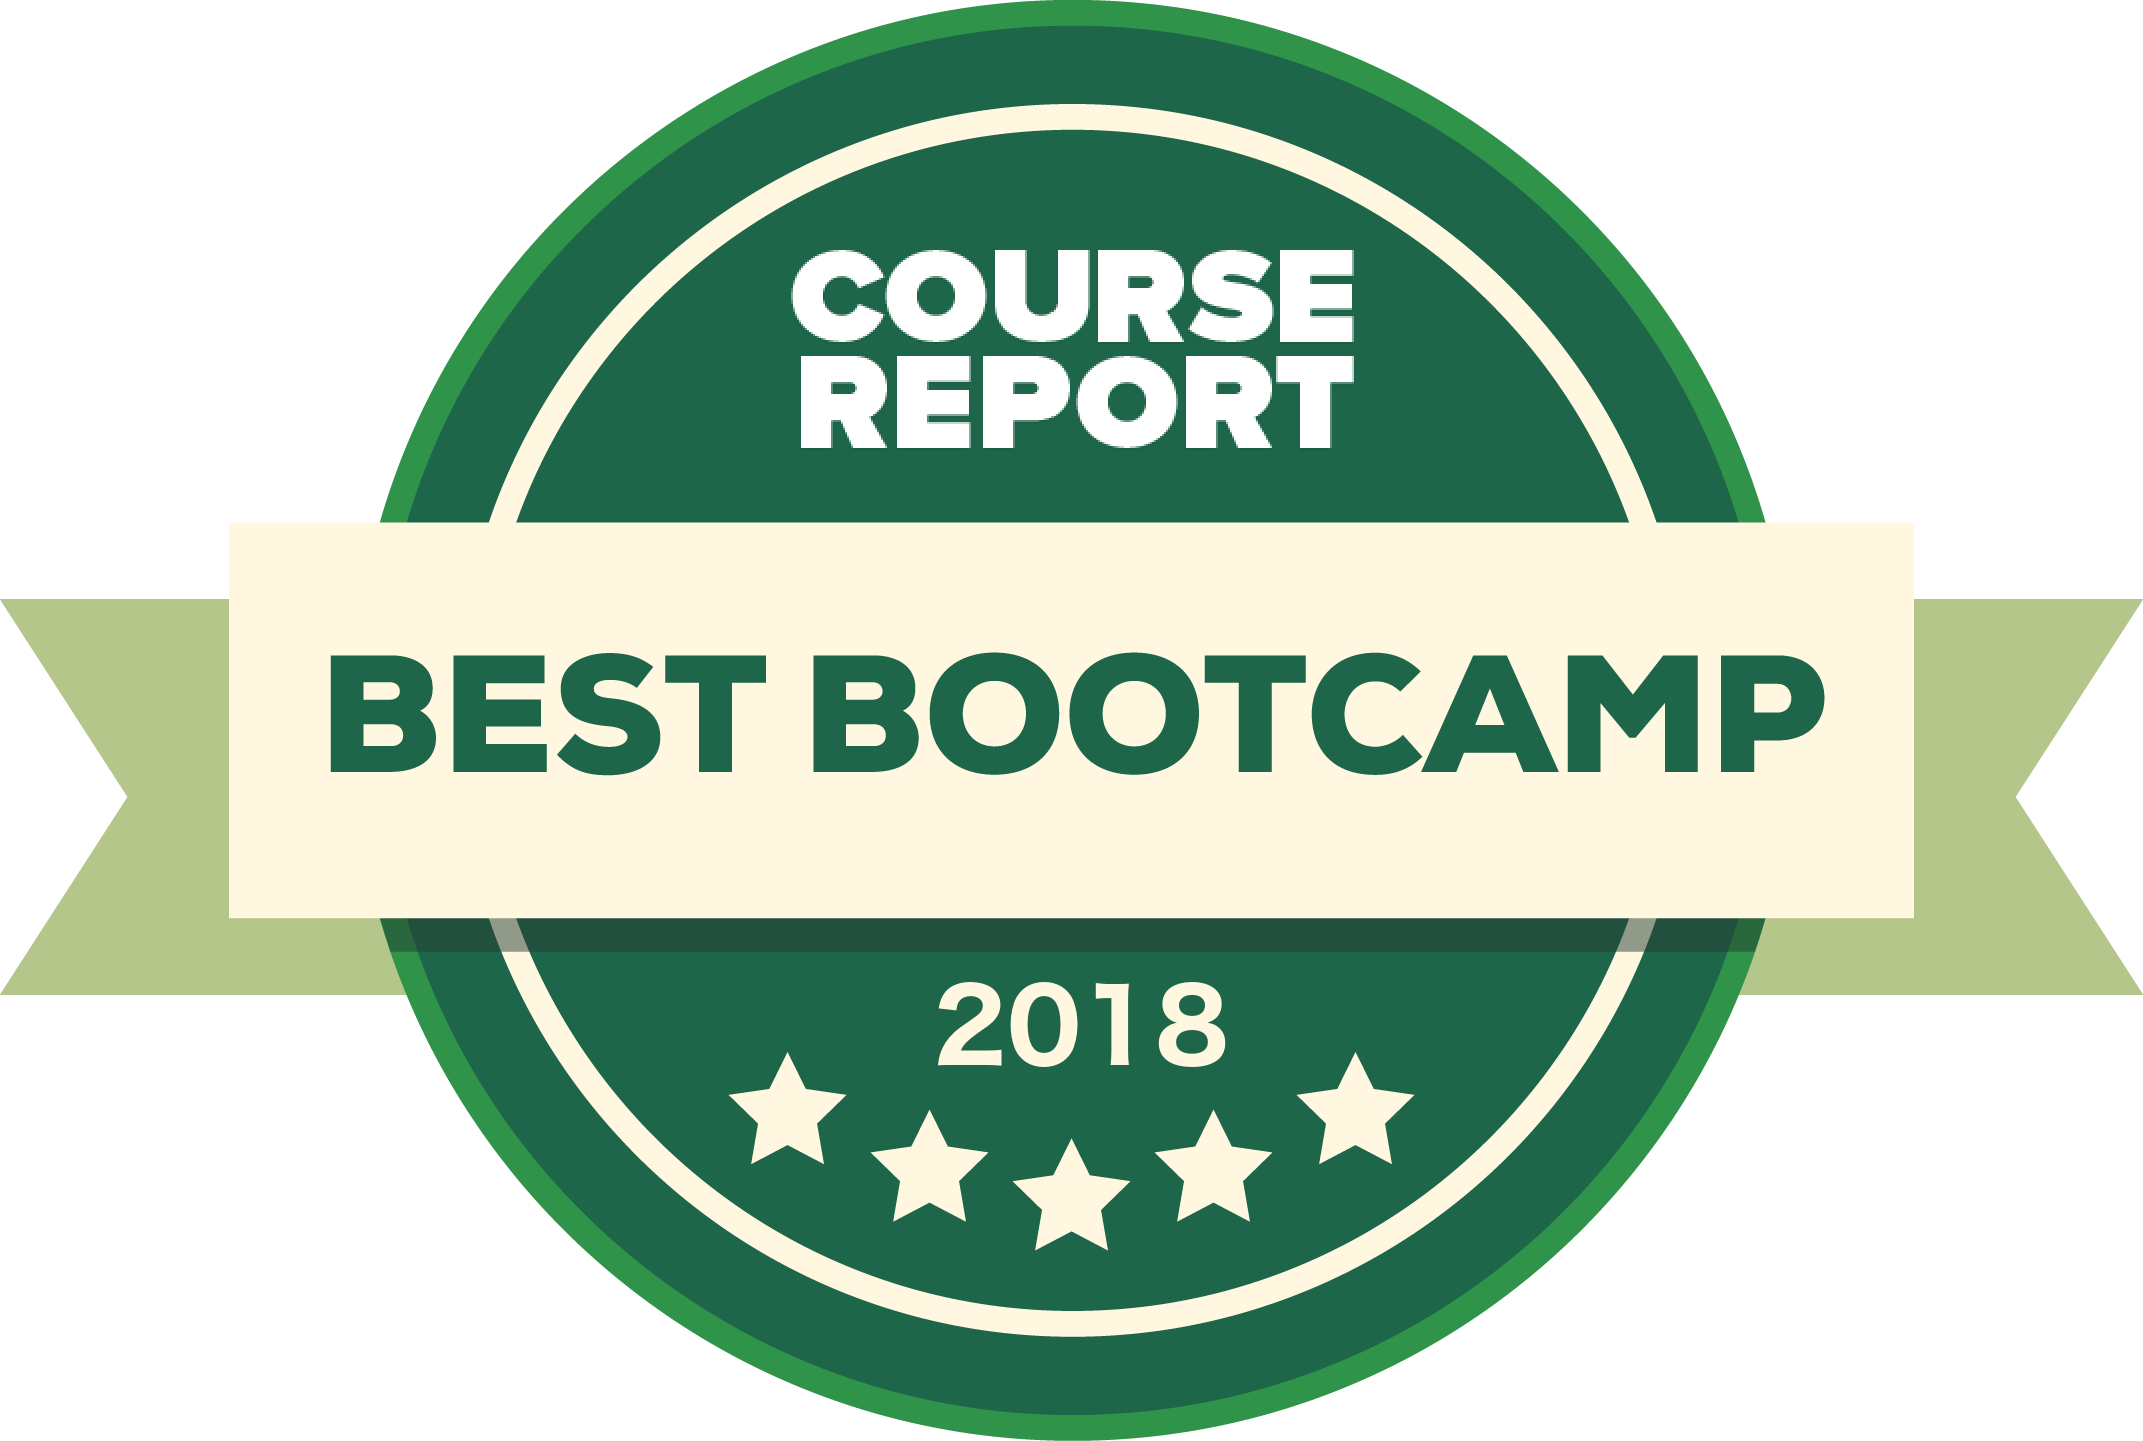 Course Report Best Bootcamp